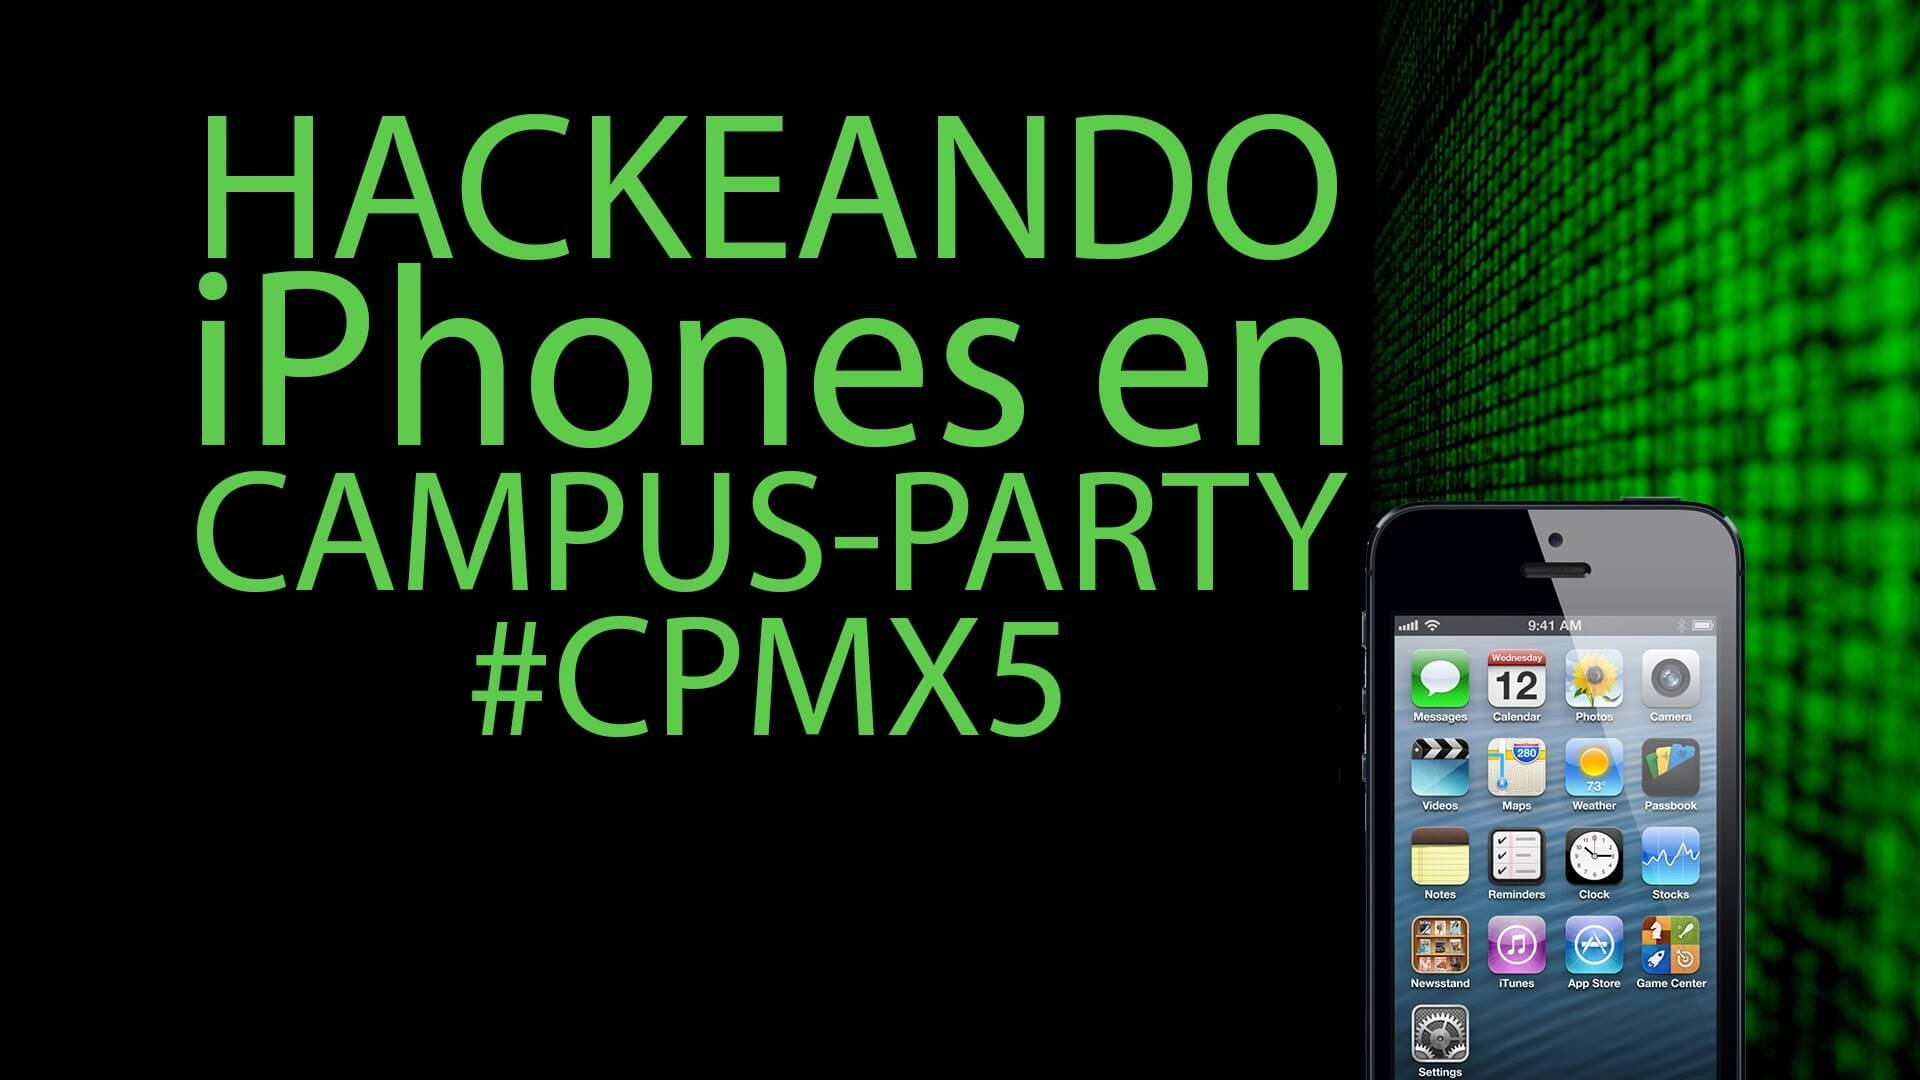 Hackeando iPhone´s en el Campus-Party #CPMX5